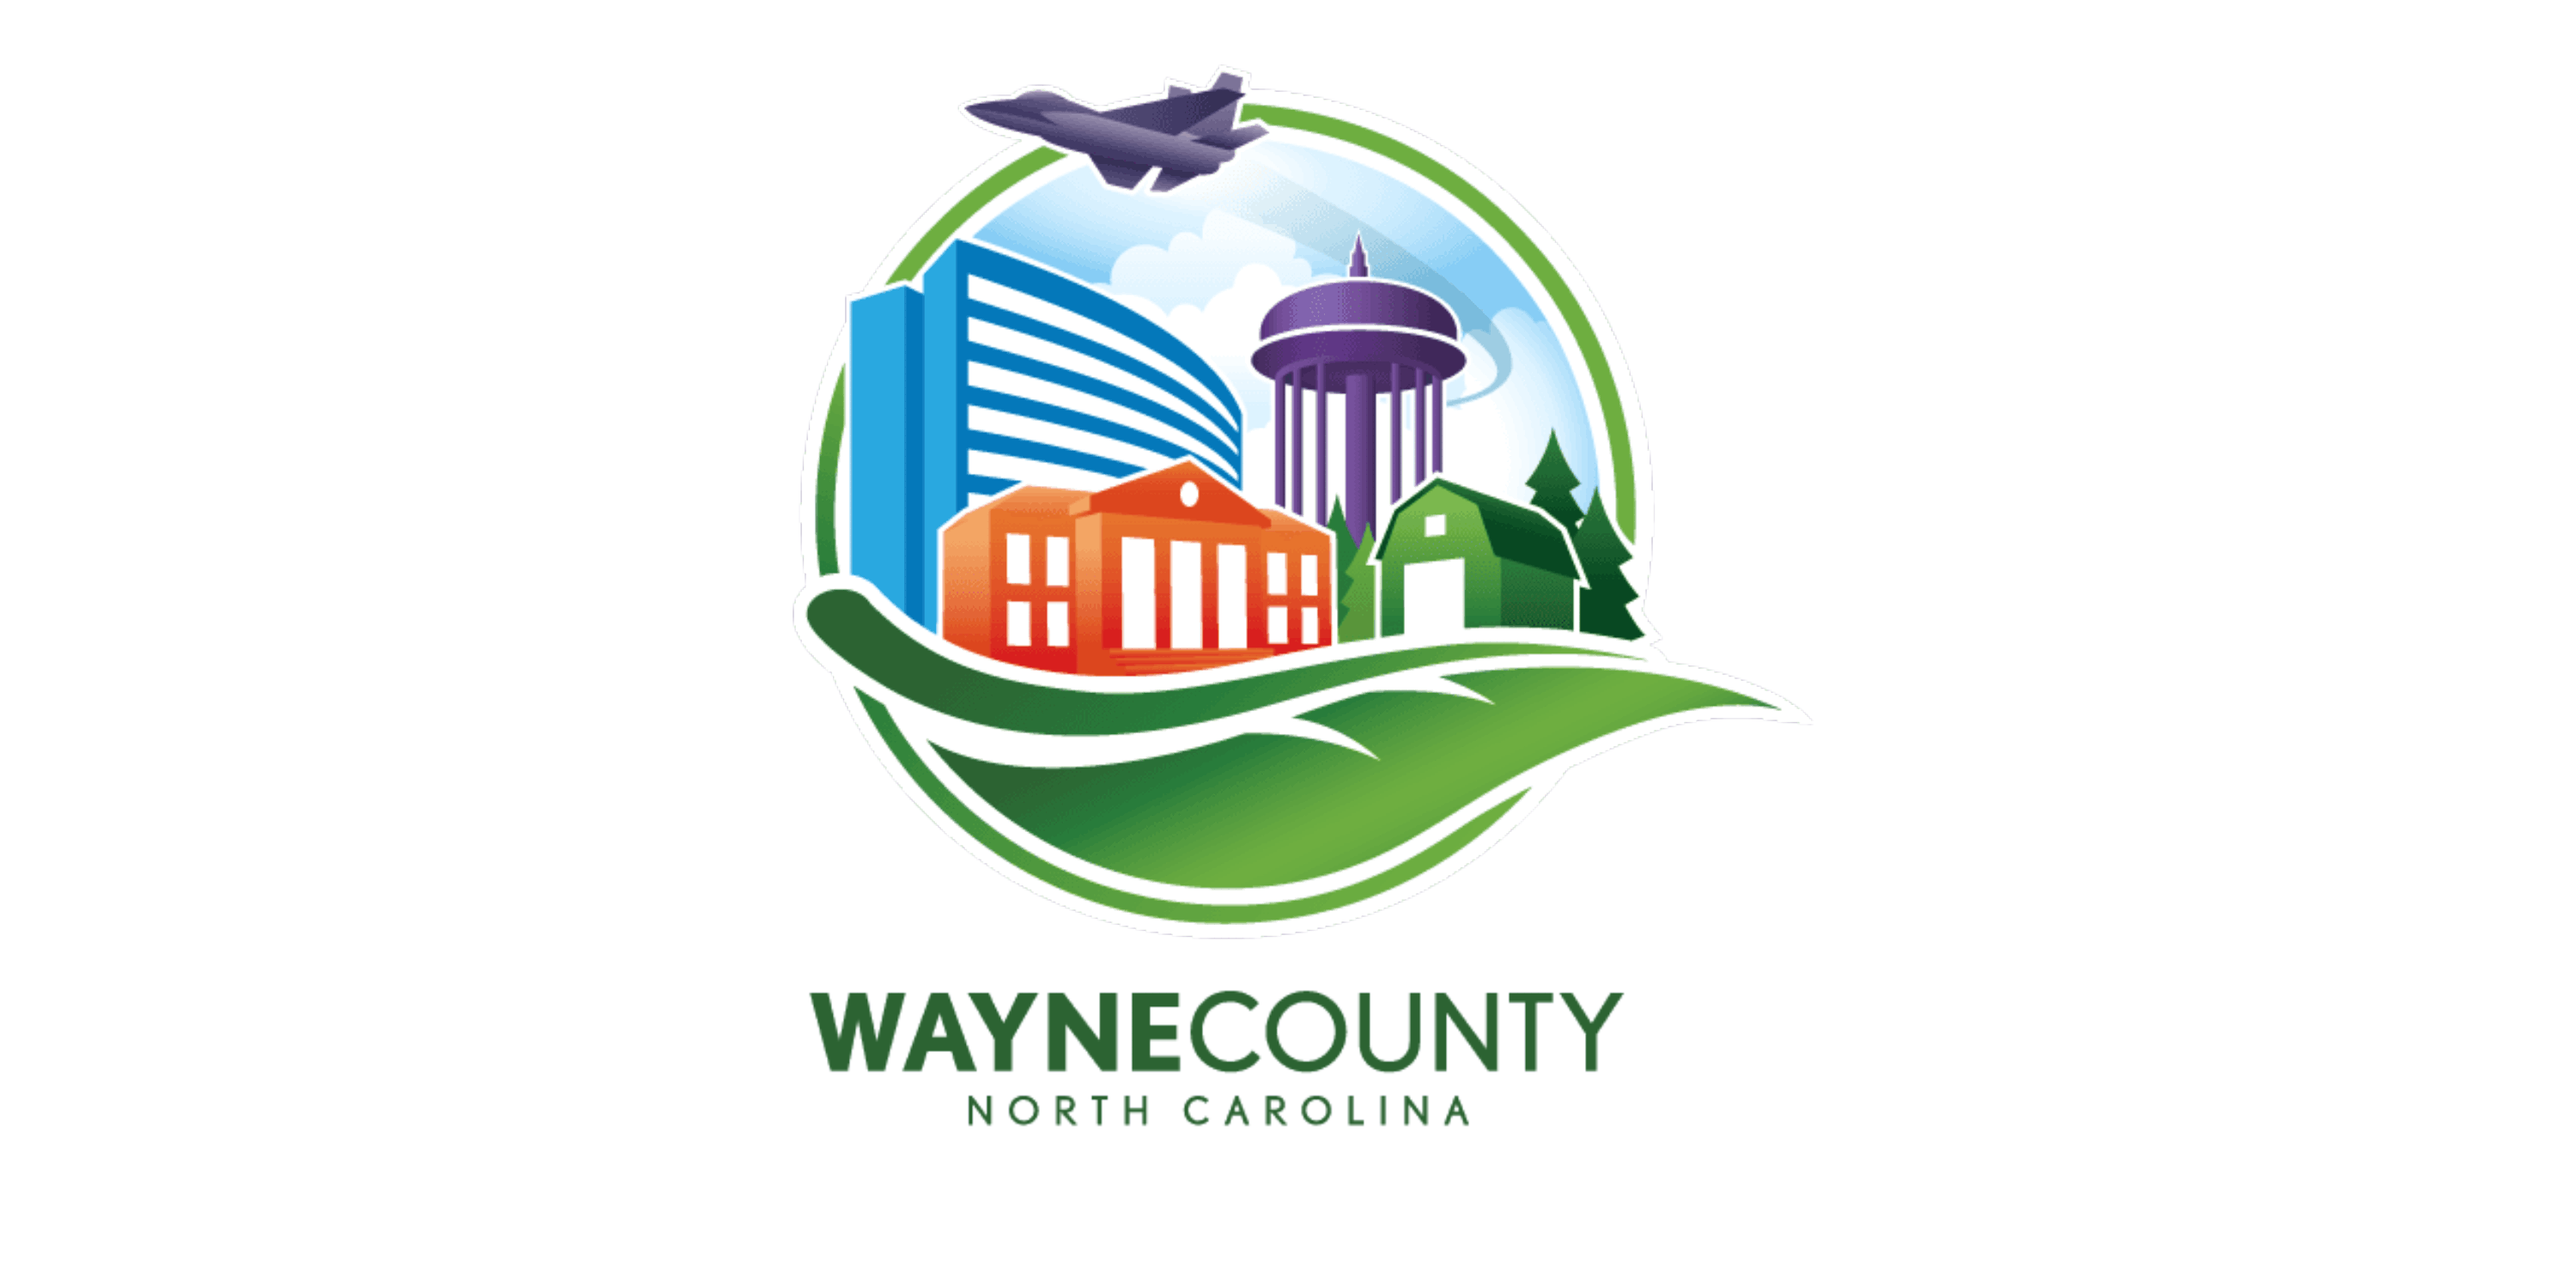 LaunchGoldsboro Partner Wayne County